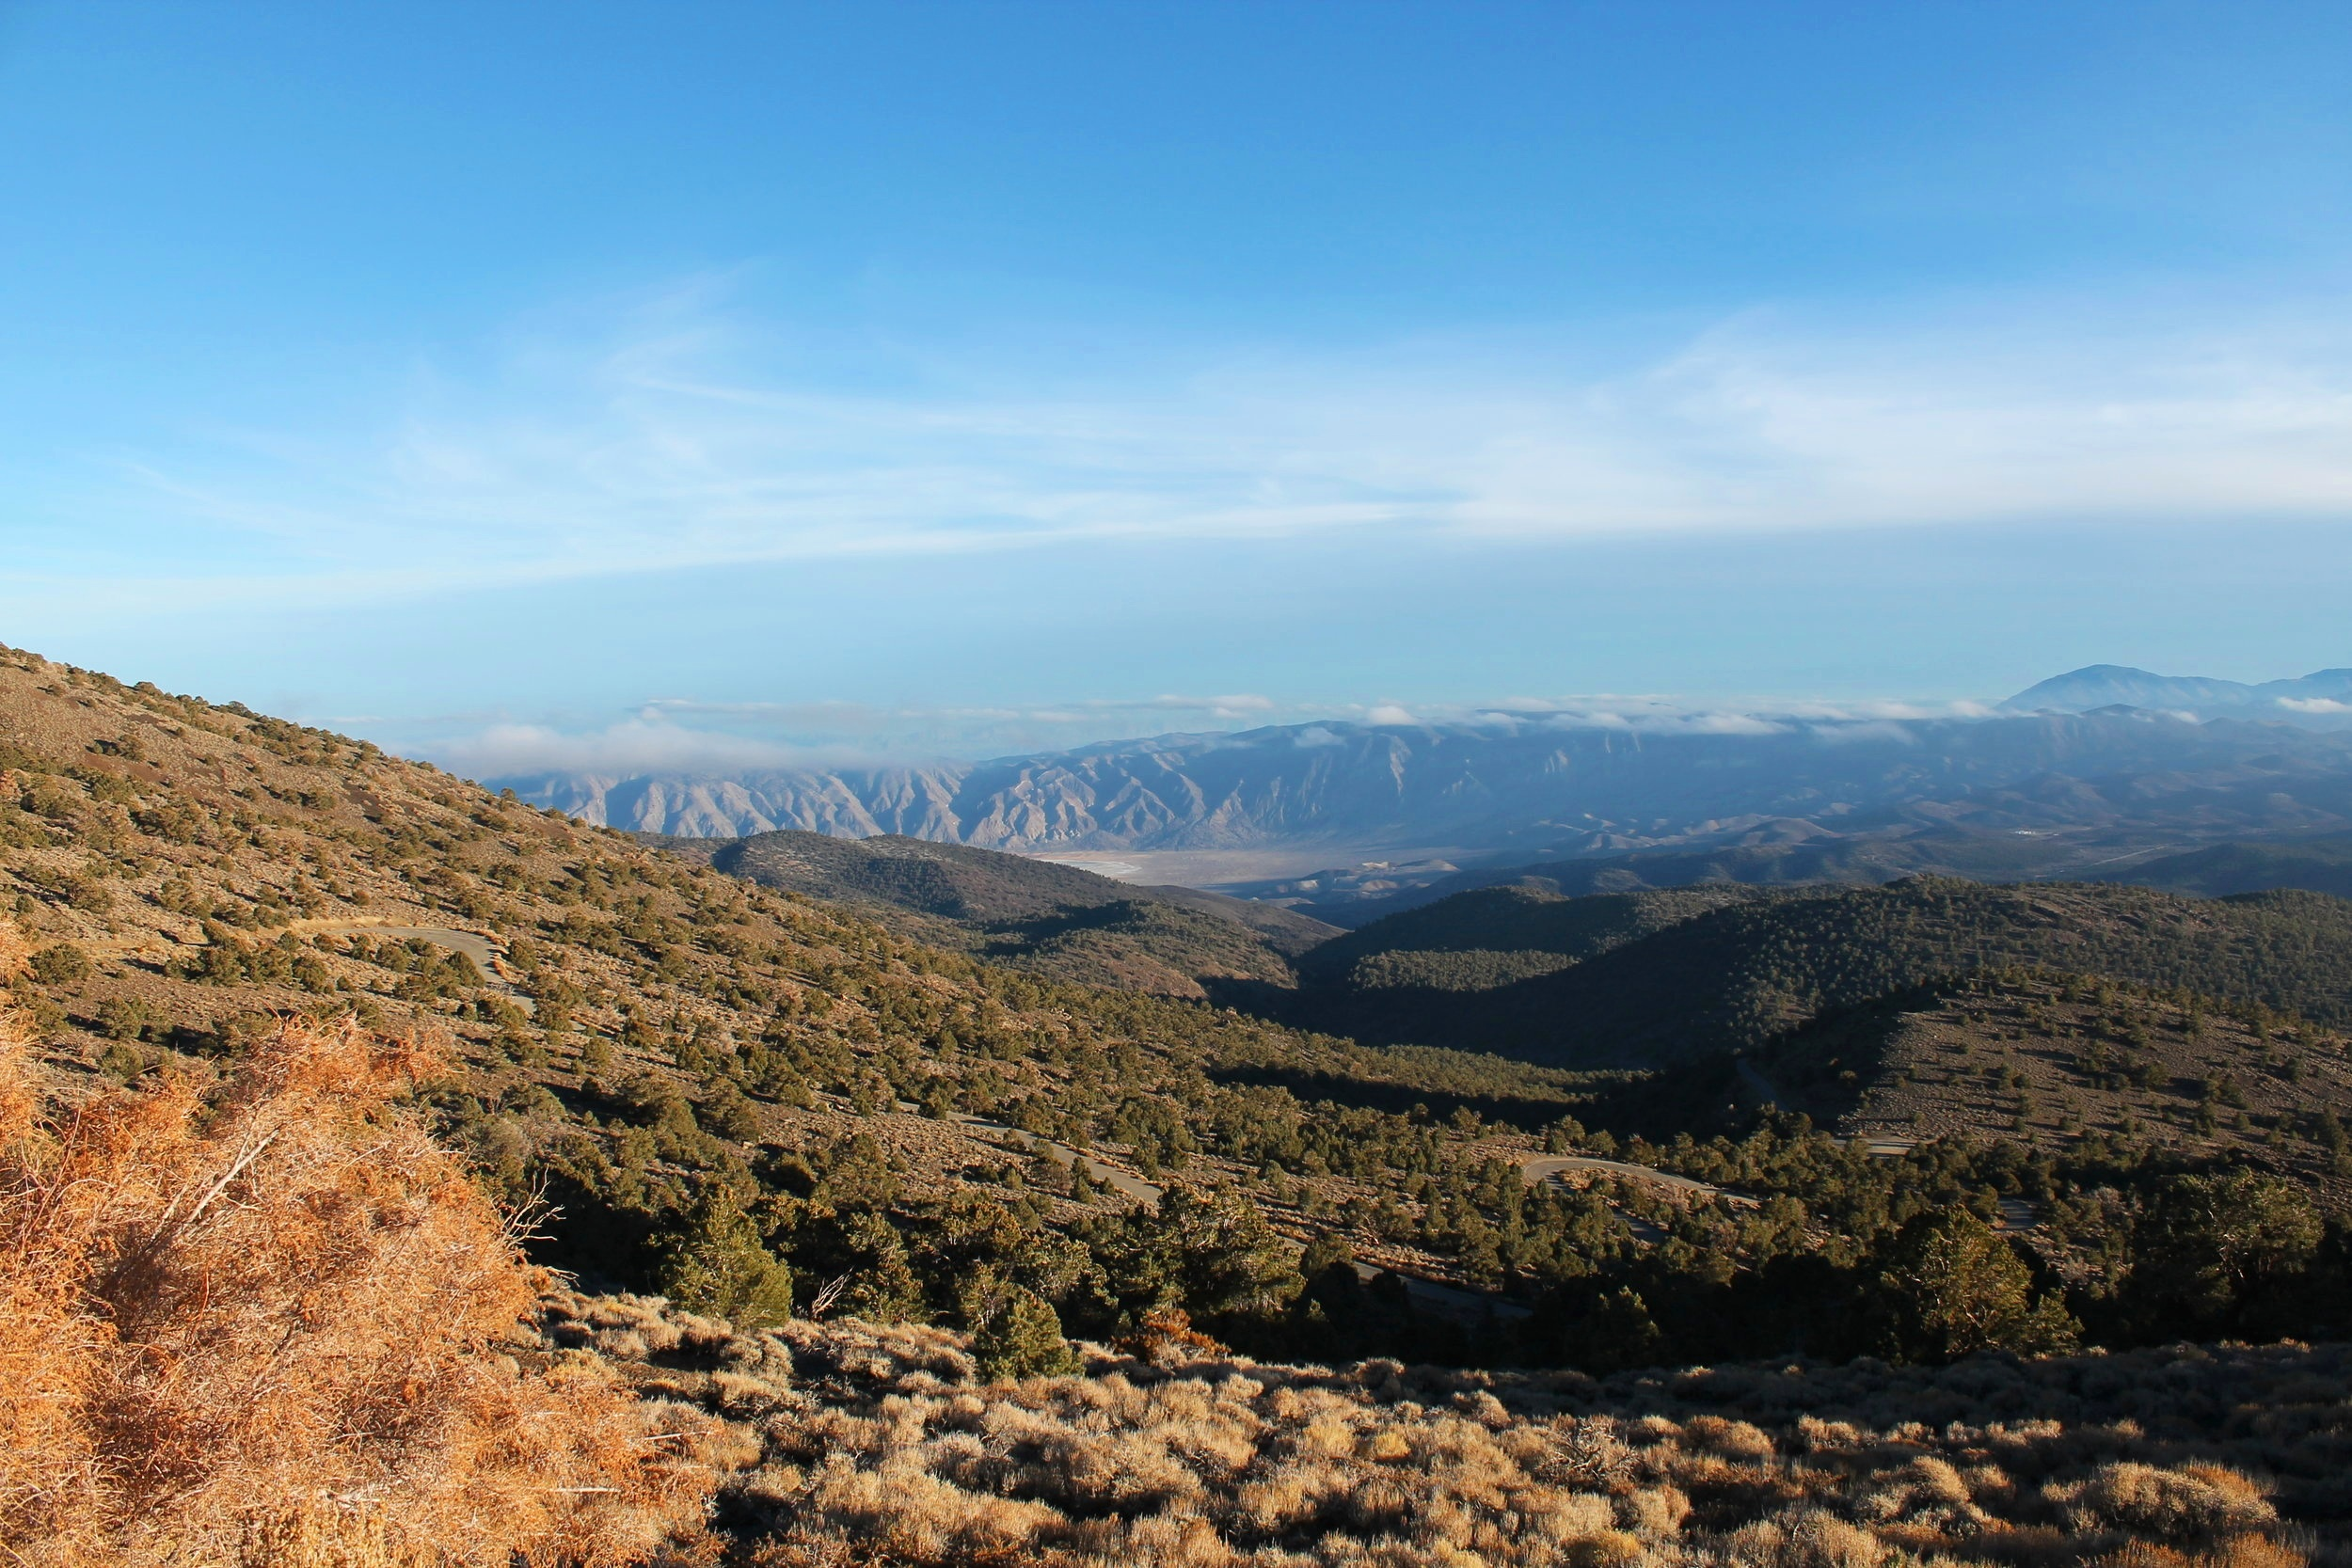 Looking down at the Owens Valley.